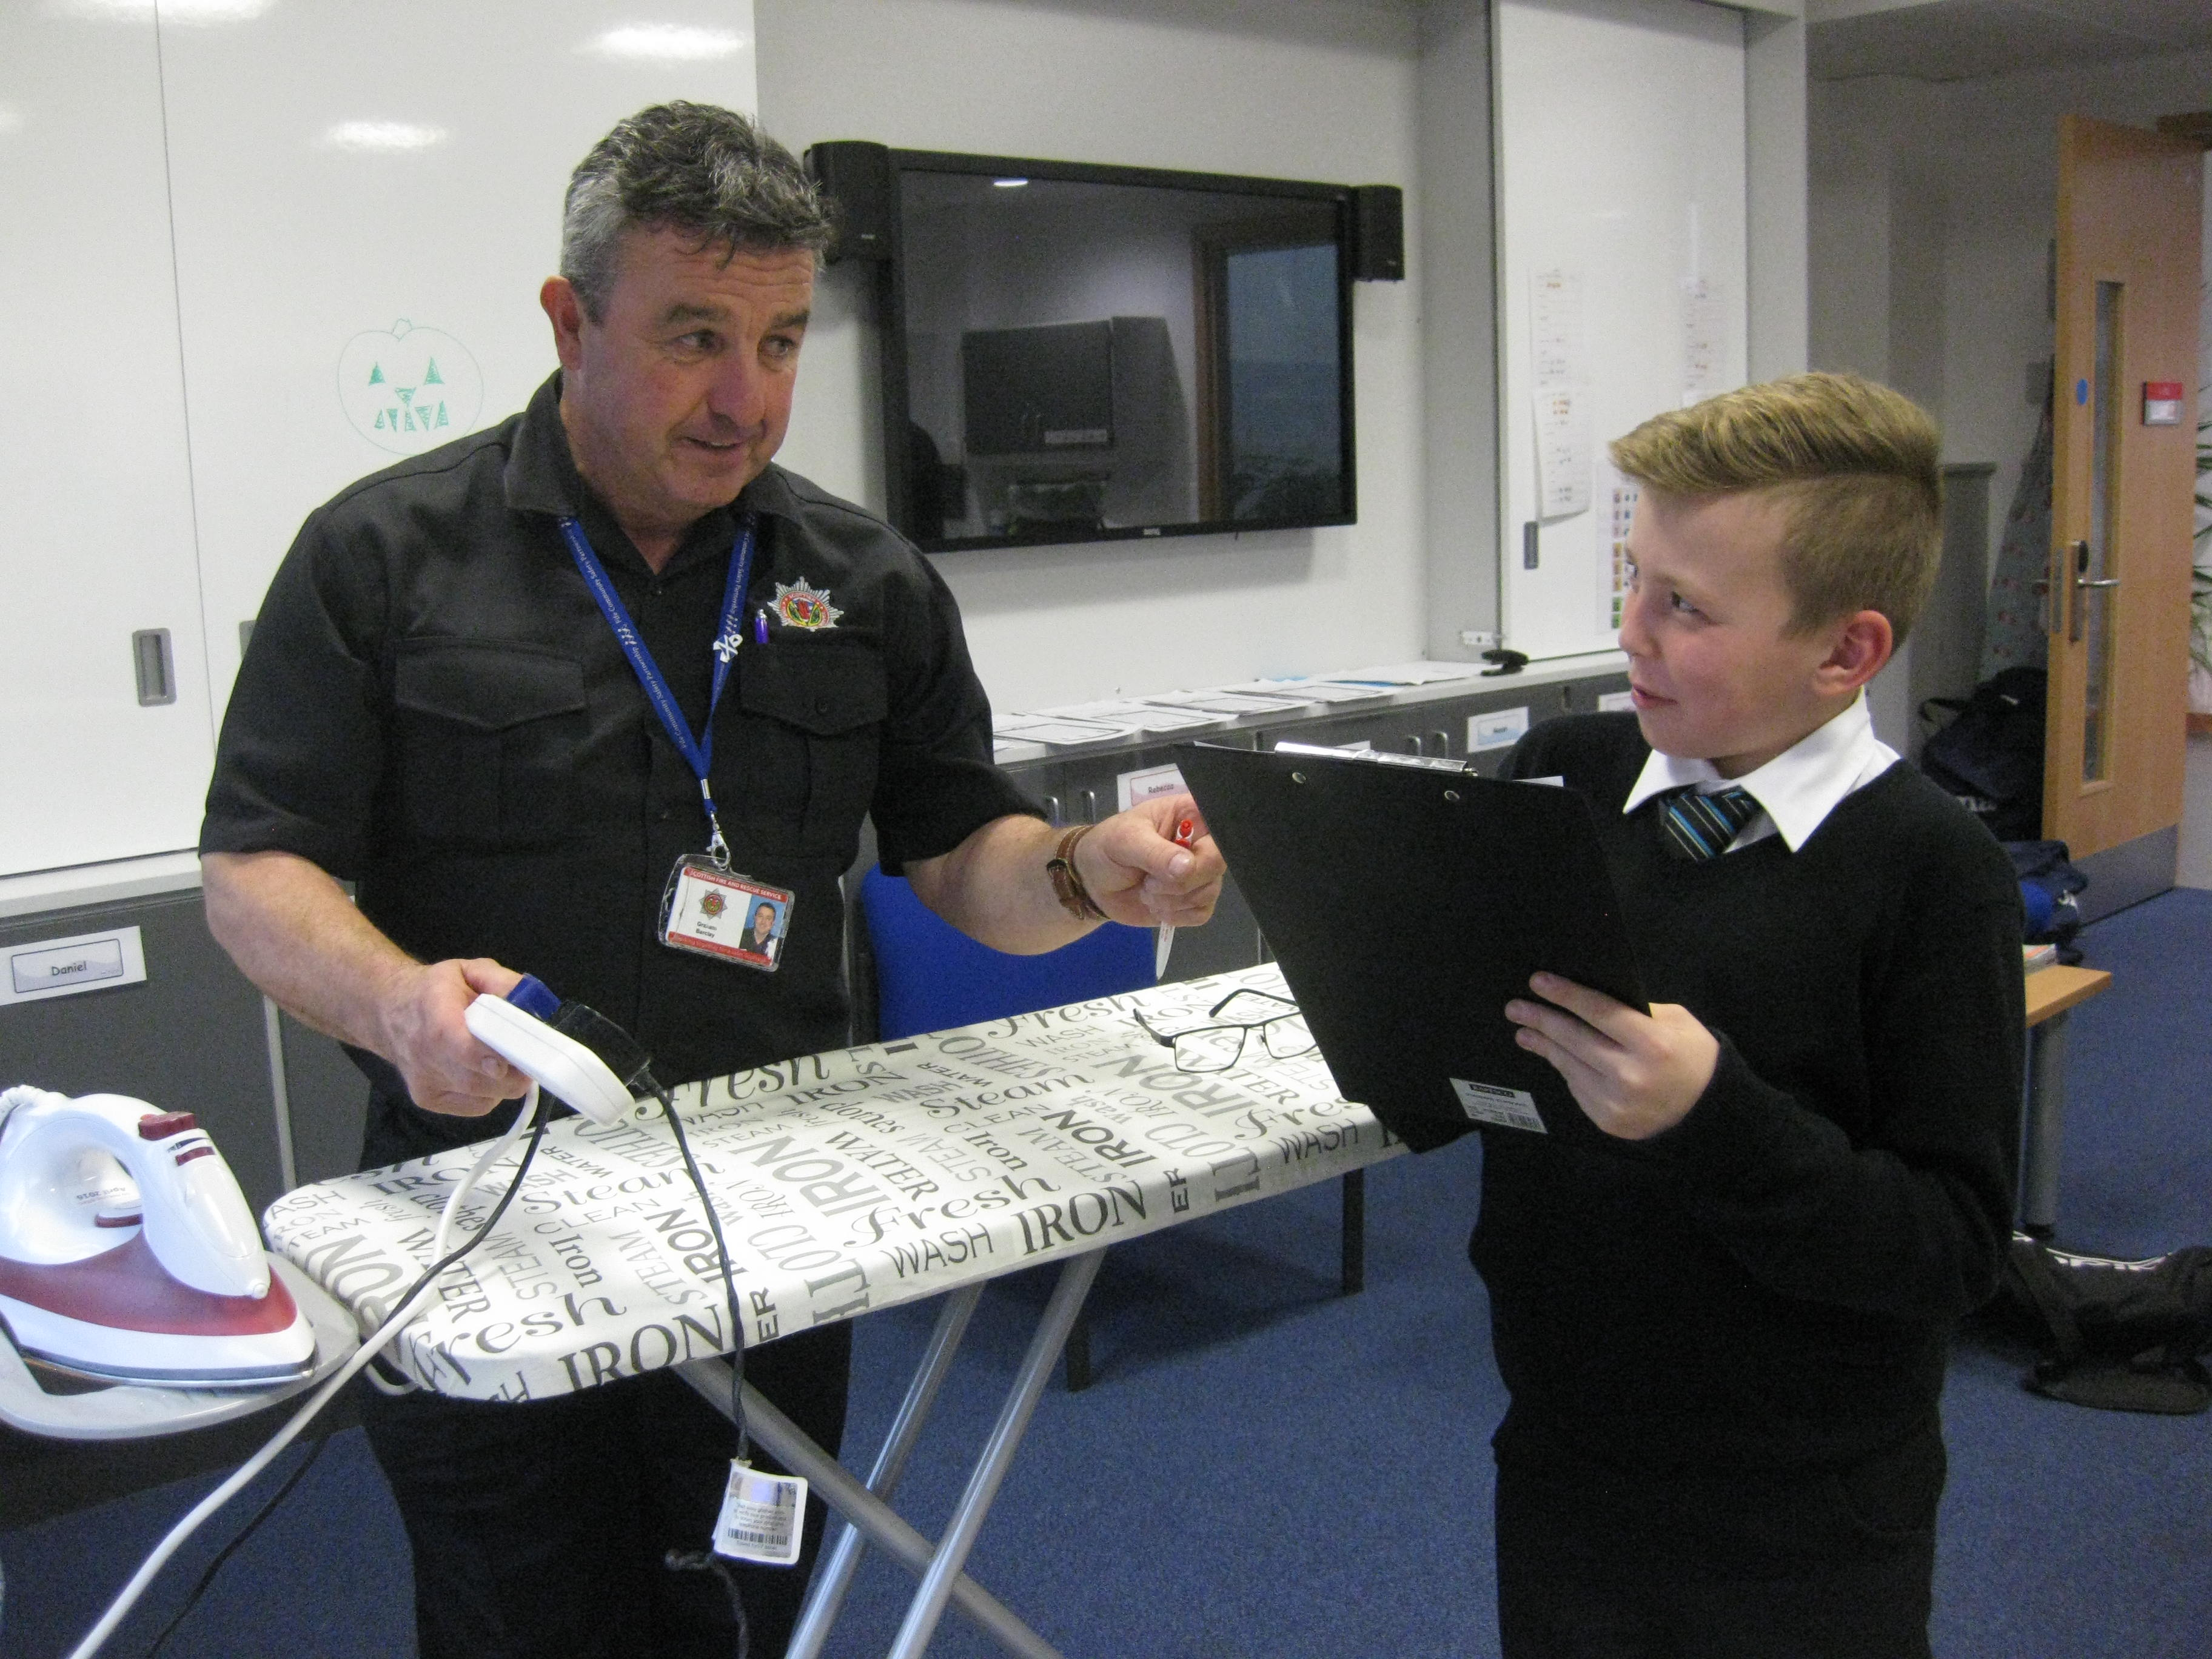 Auchmuty High School in Glenrothes enjoyed a fire safety day